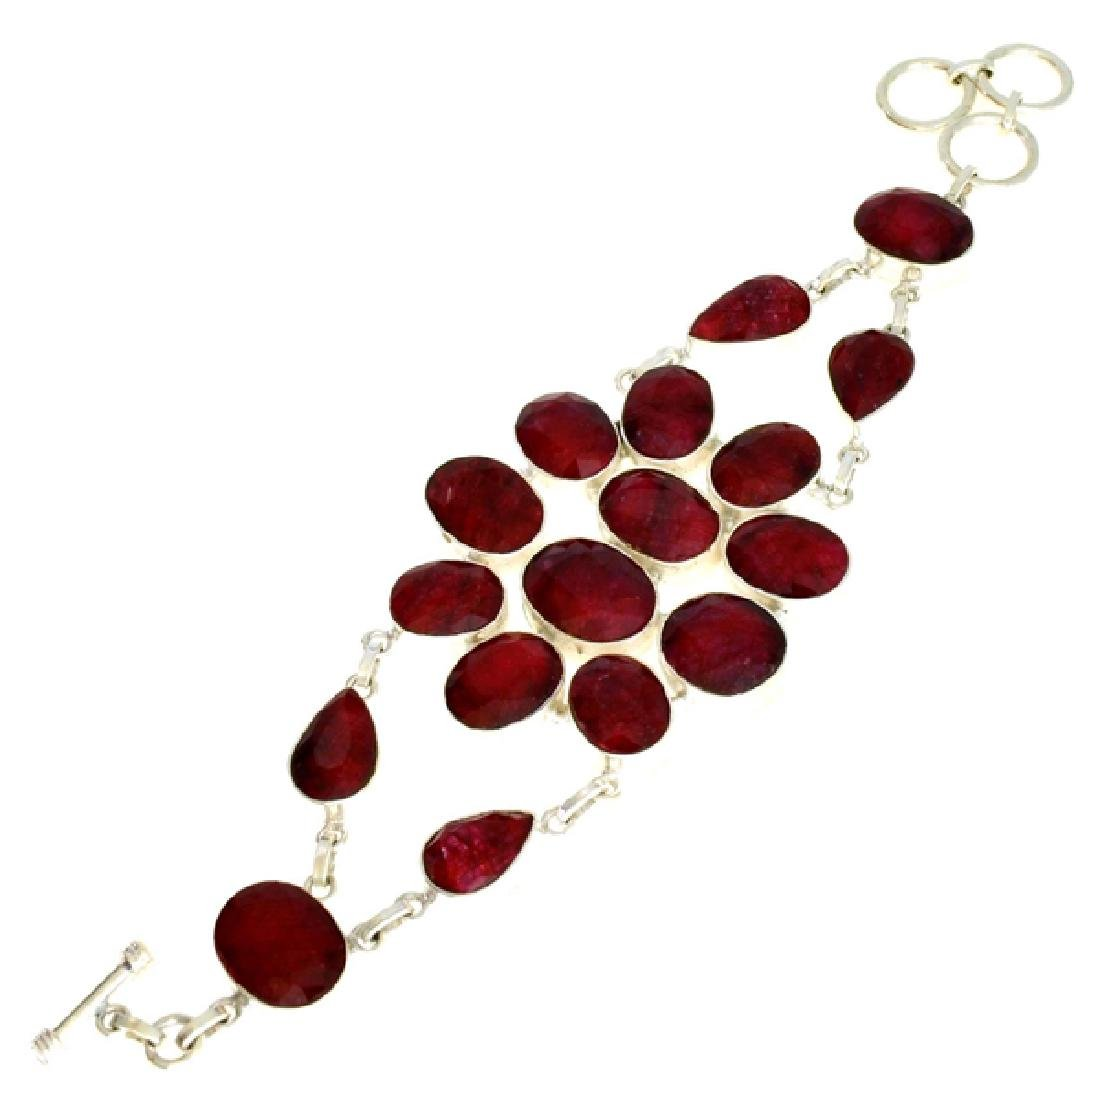 119.14CT Mixed Cut Ruby and Sterling Silver Bracelet